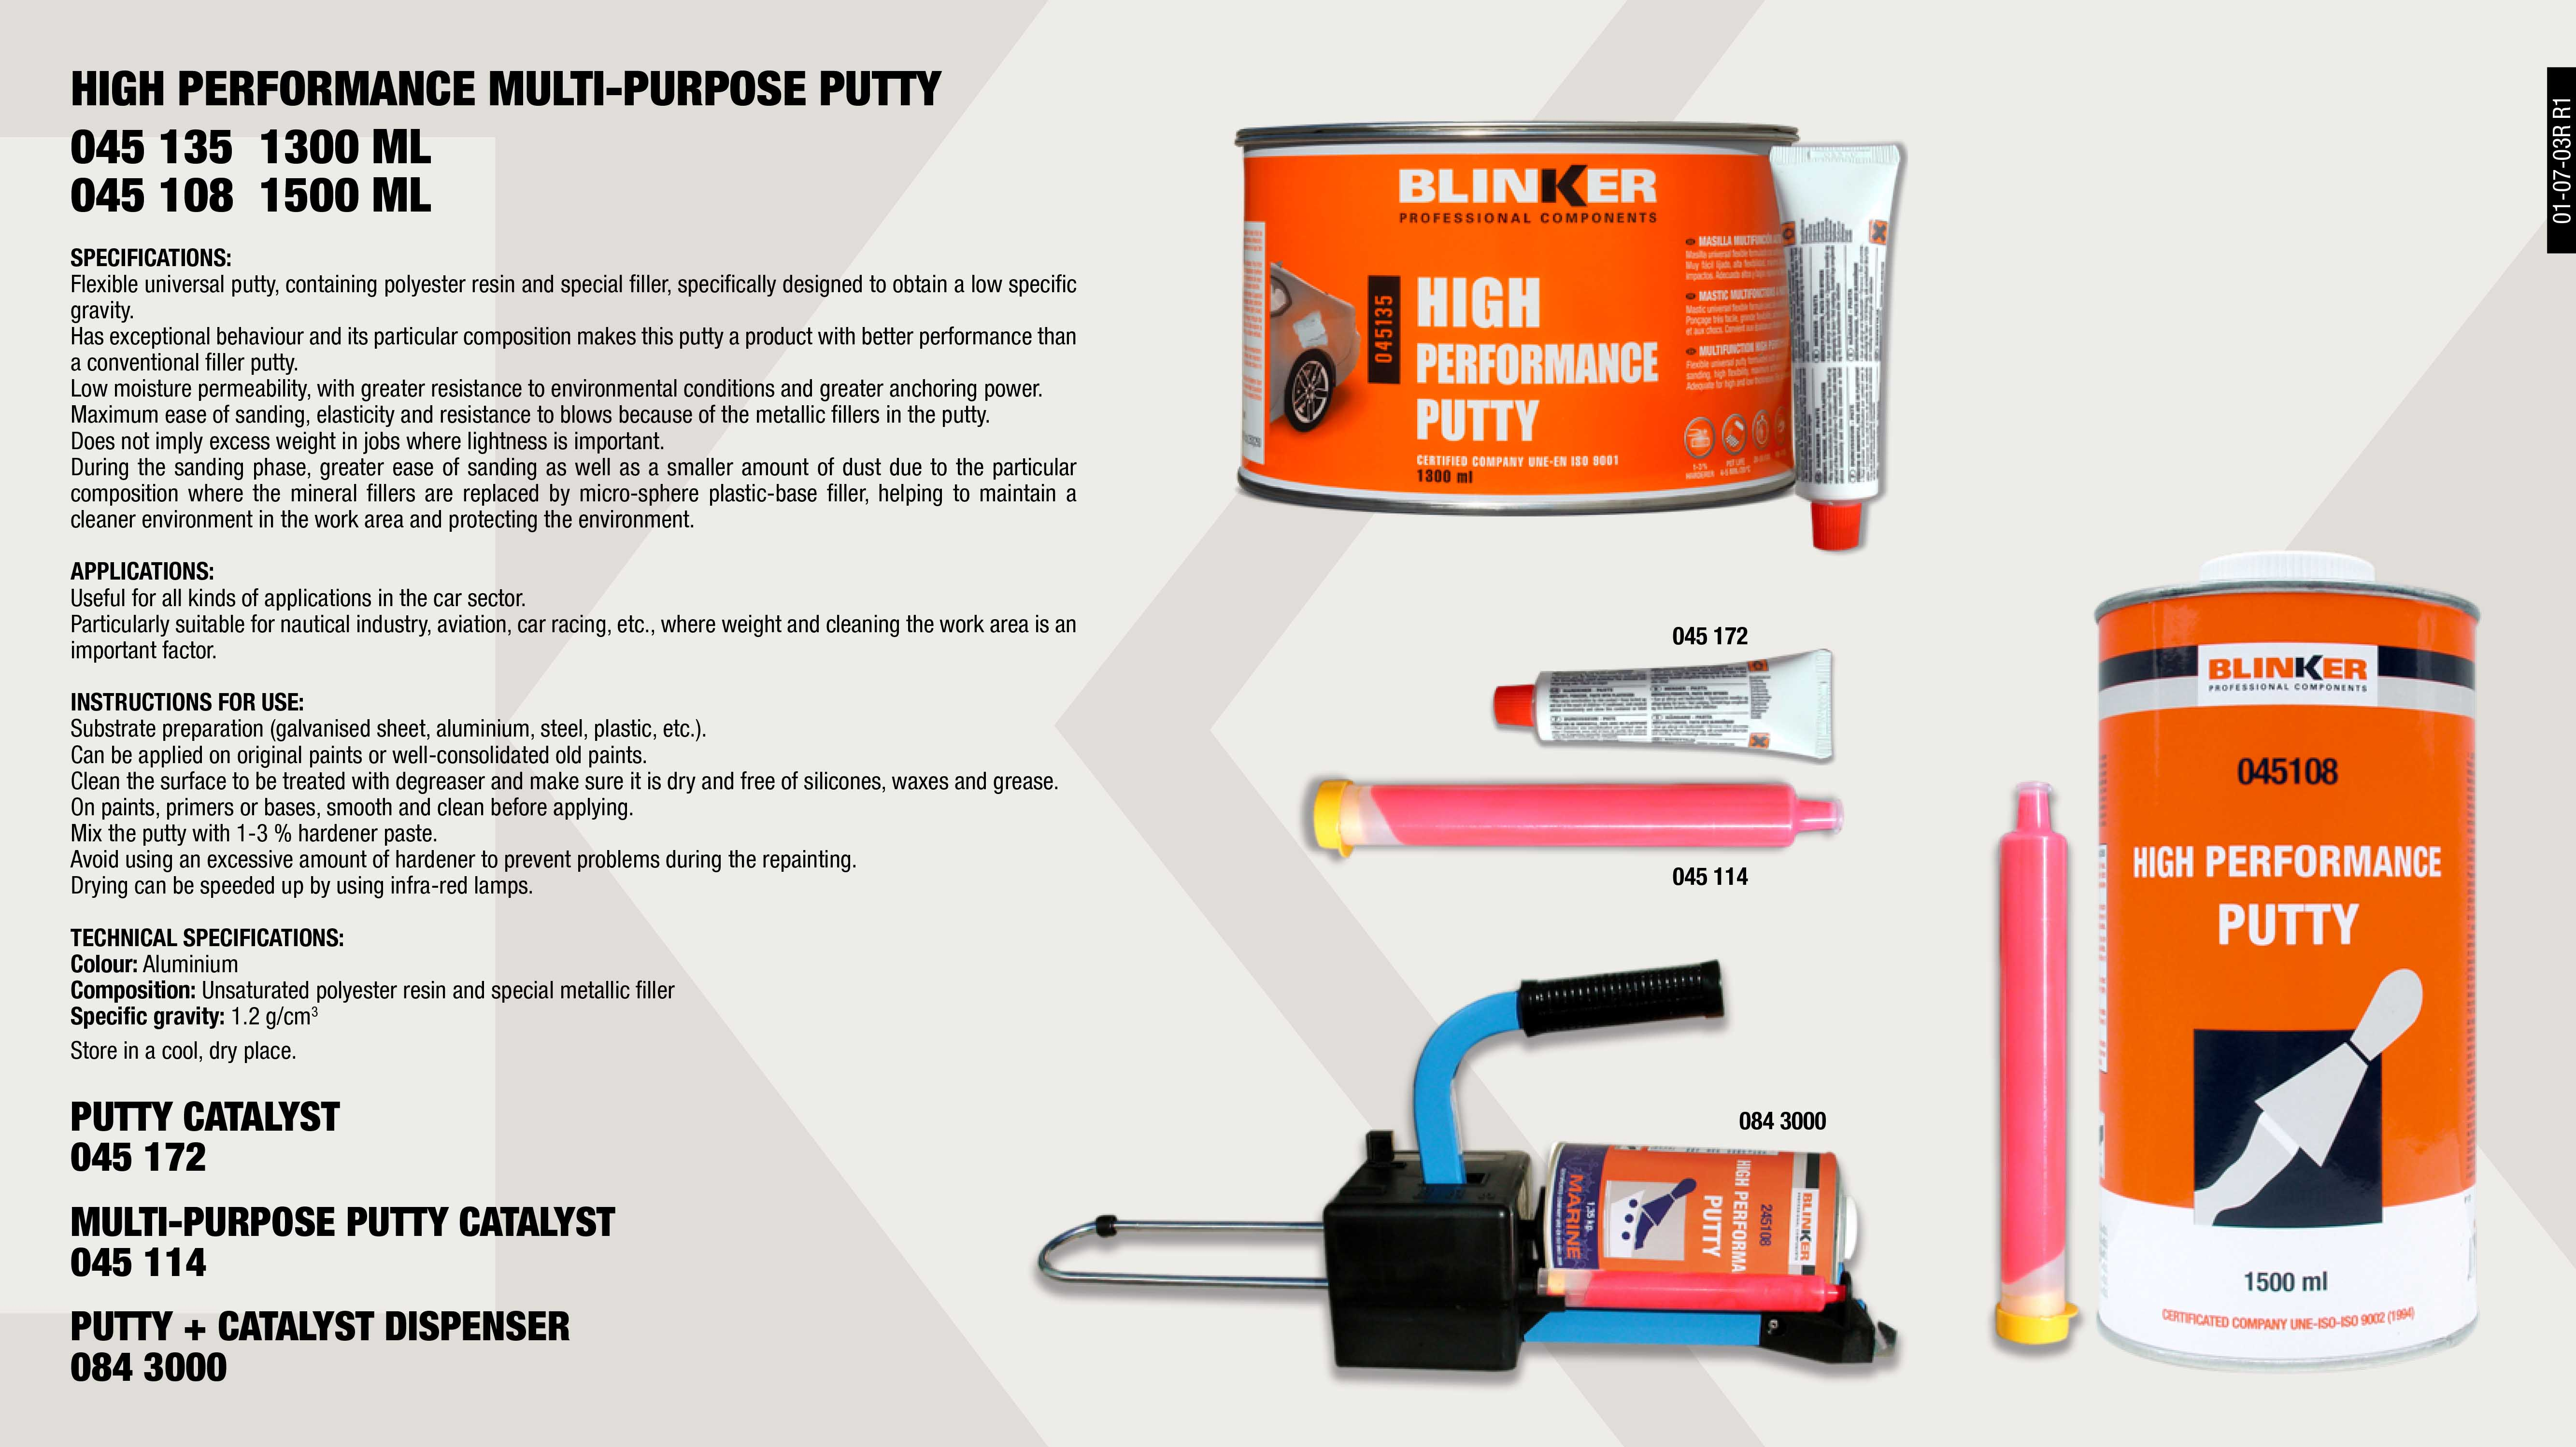 CATALYST FOR MULTI-PURPOSE PUTTY                            ,  MULTI-PURPOSE PUTTY 1300ML.(TIN)                            ,  HARDENER FOR POLYESTER PUTTY 40GR                           ,  MULTI-PURPOSE PUTTY 1,500ML (BOTLE)                         ,  PUTTY + CATALYST DISPENSER                                  ,